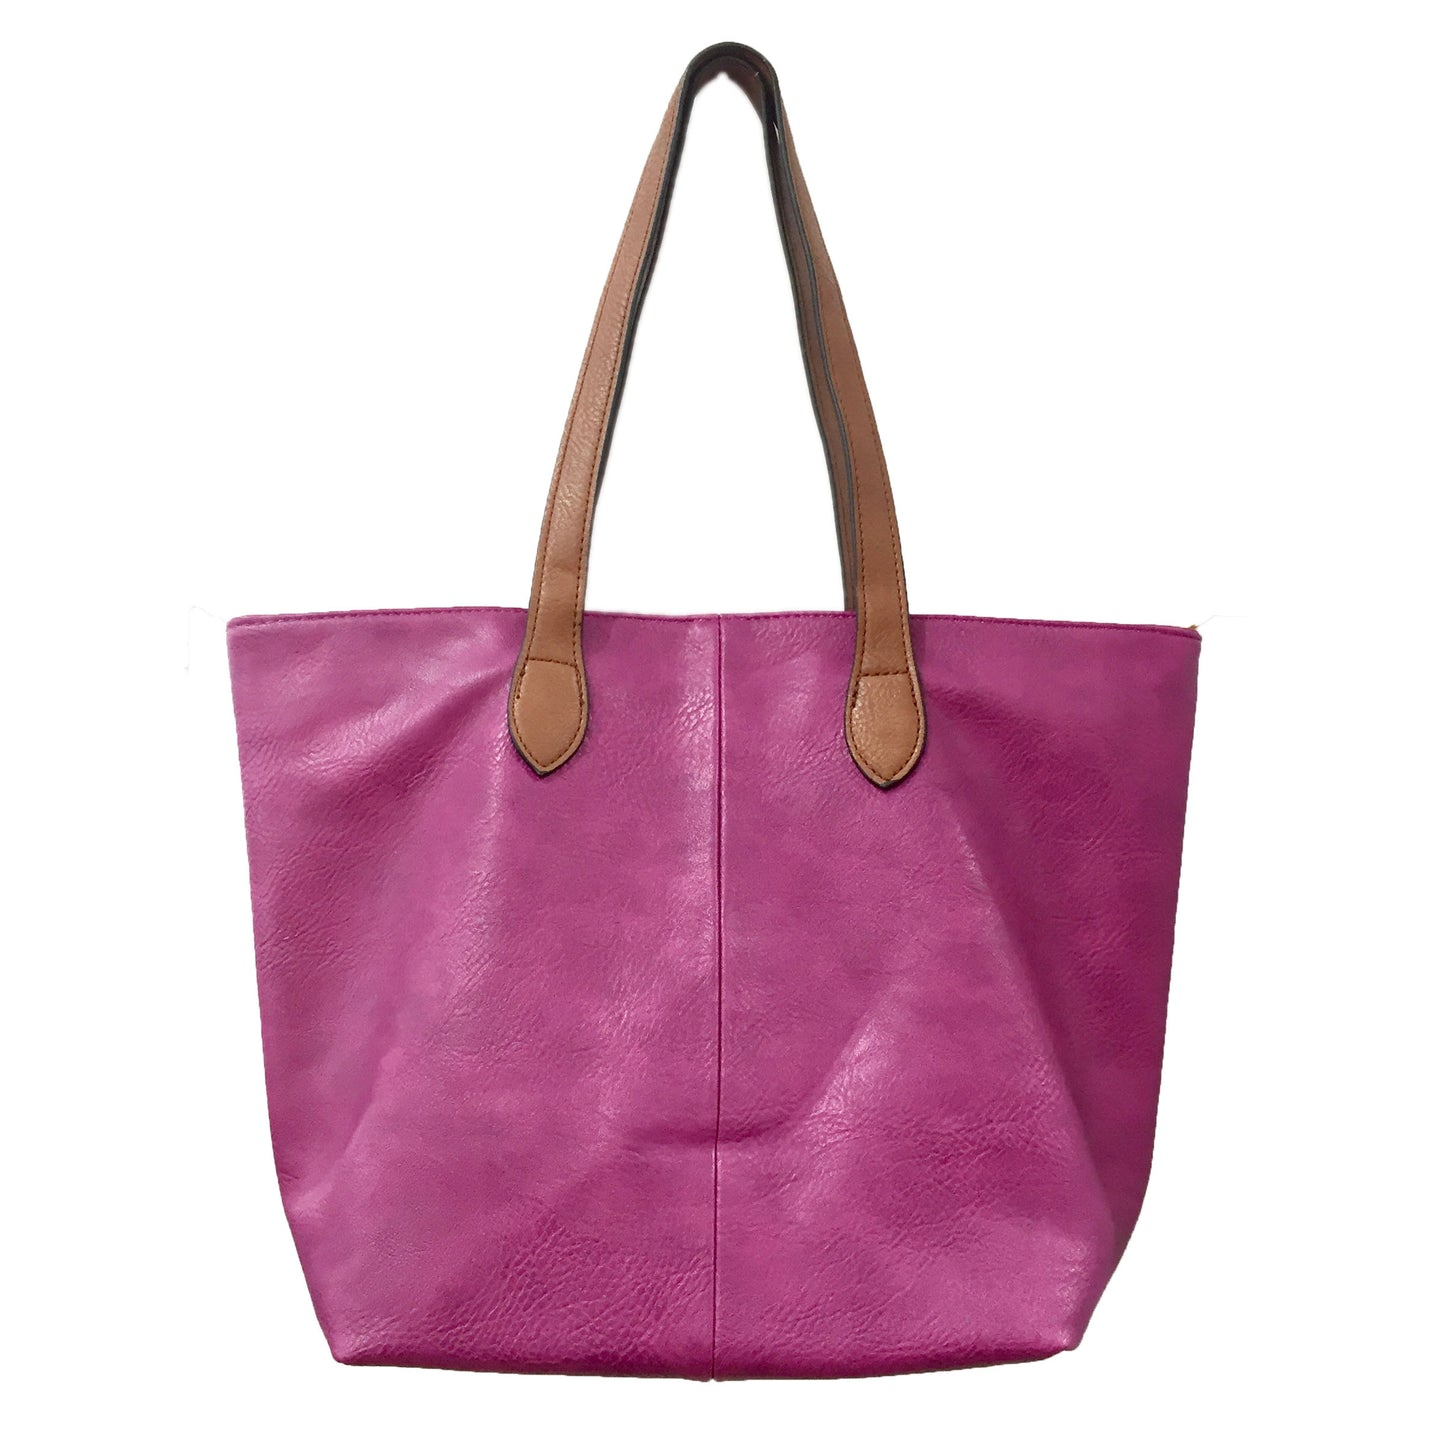 Fuchsia Shopper- Tote Handbag